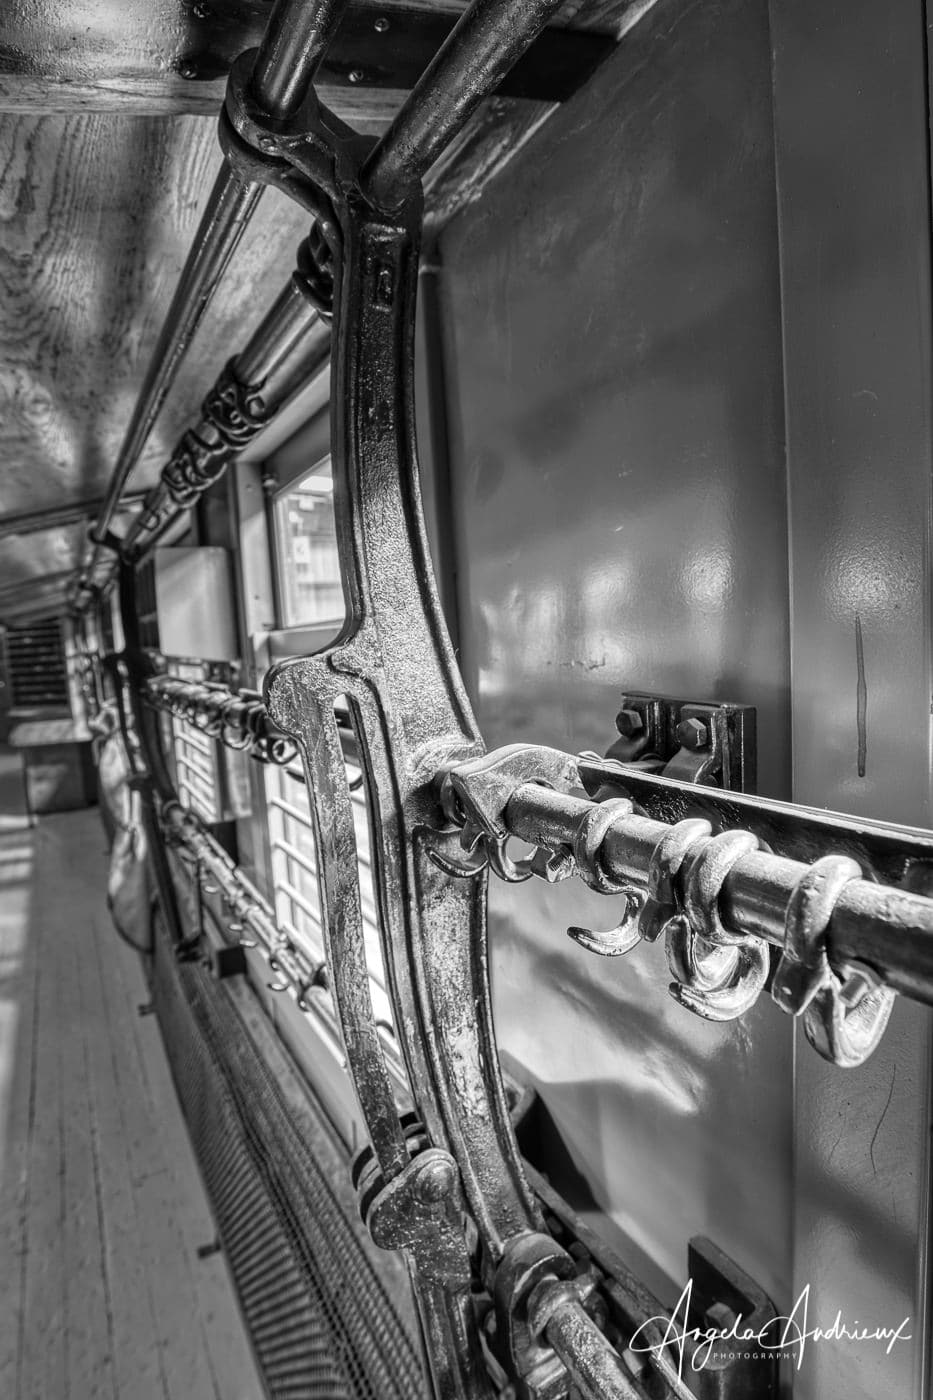 Postal Carriage Details at the Pacific Southwest Railway Museum in Campo, California